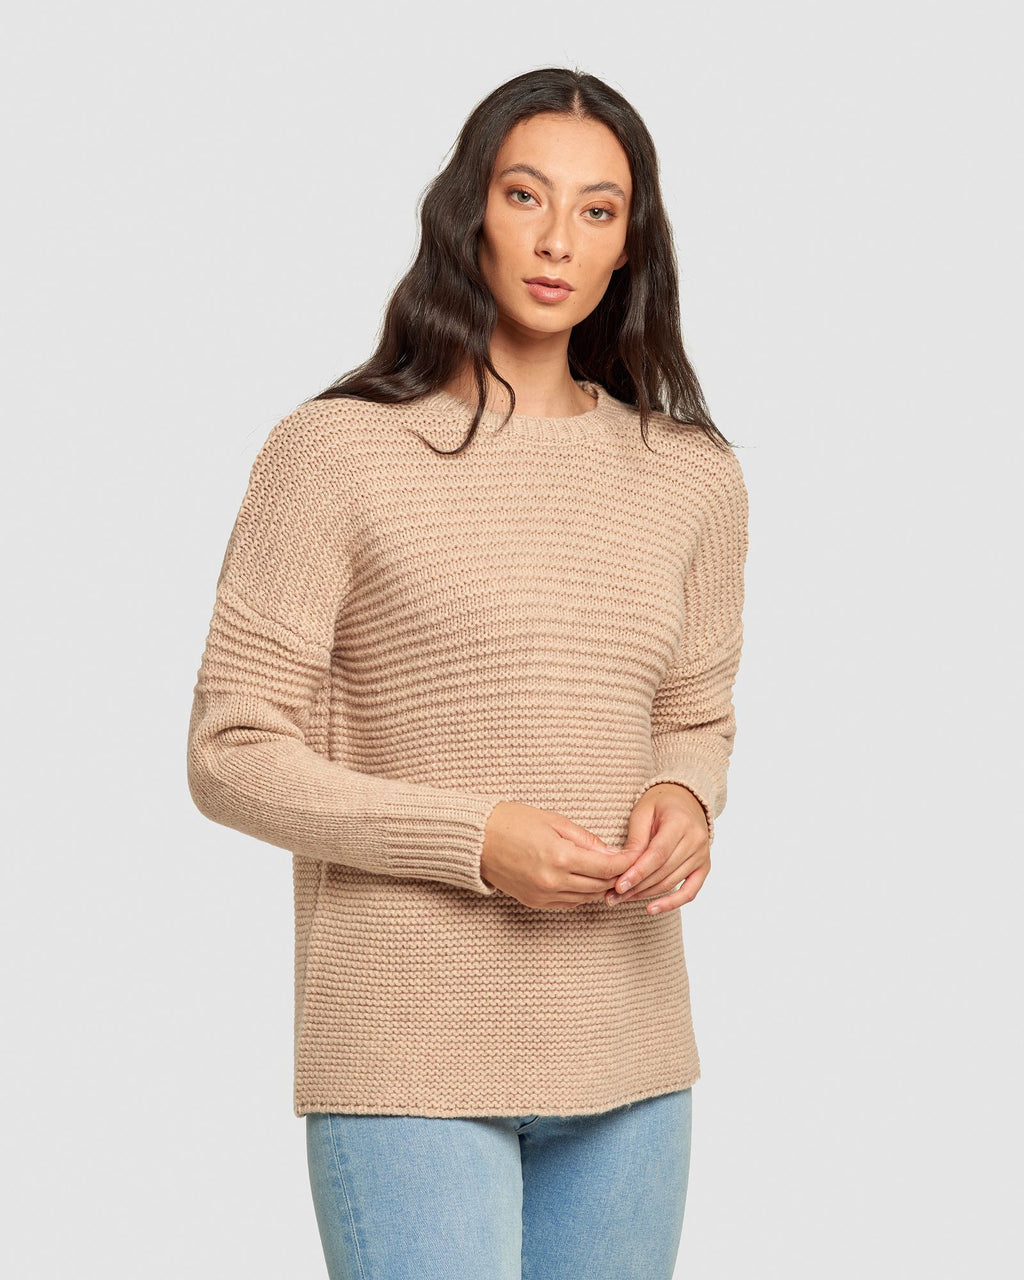 Maxted London Pullover - Cookie Dough Marle